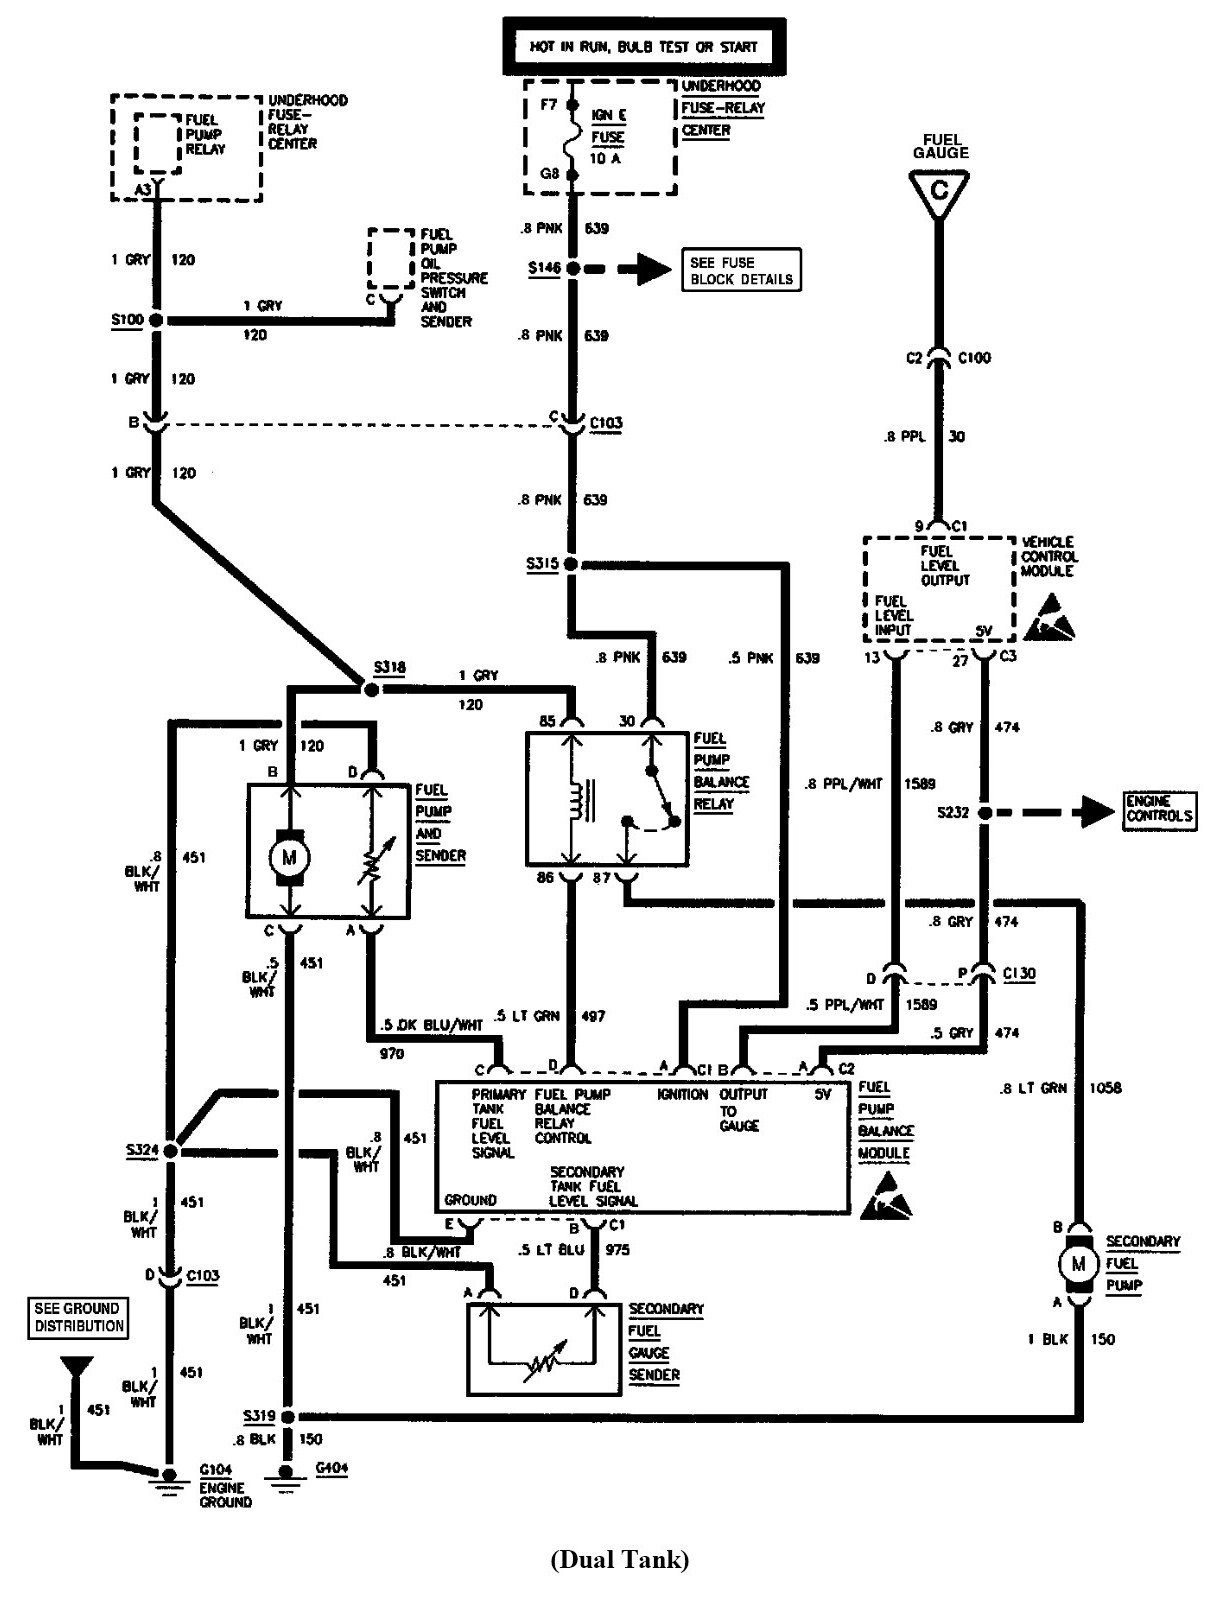 Wiring Diagram For Gmc Serria Intank Fuel Pump